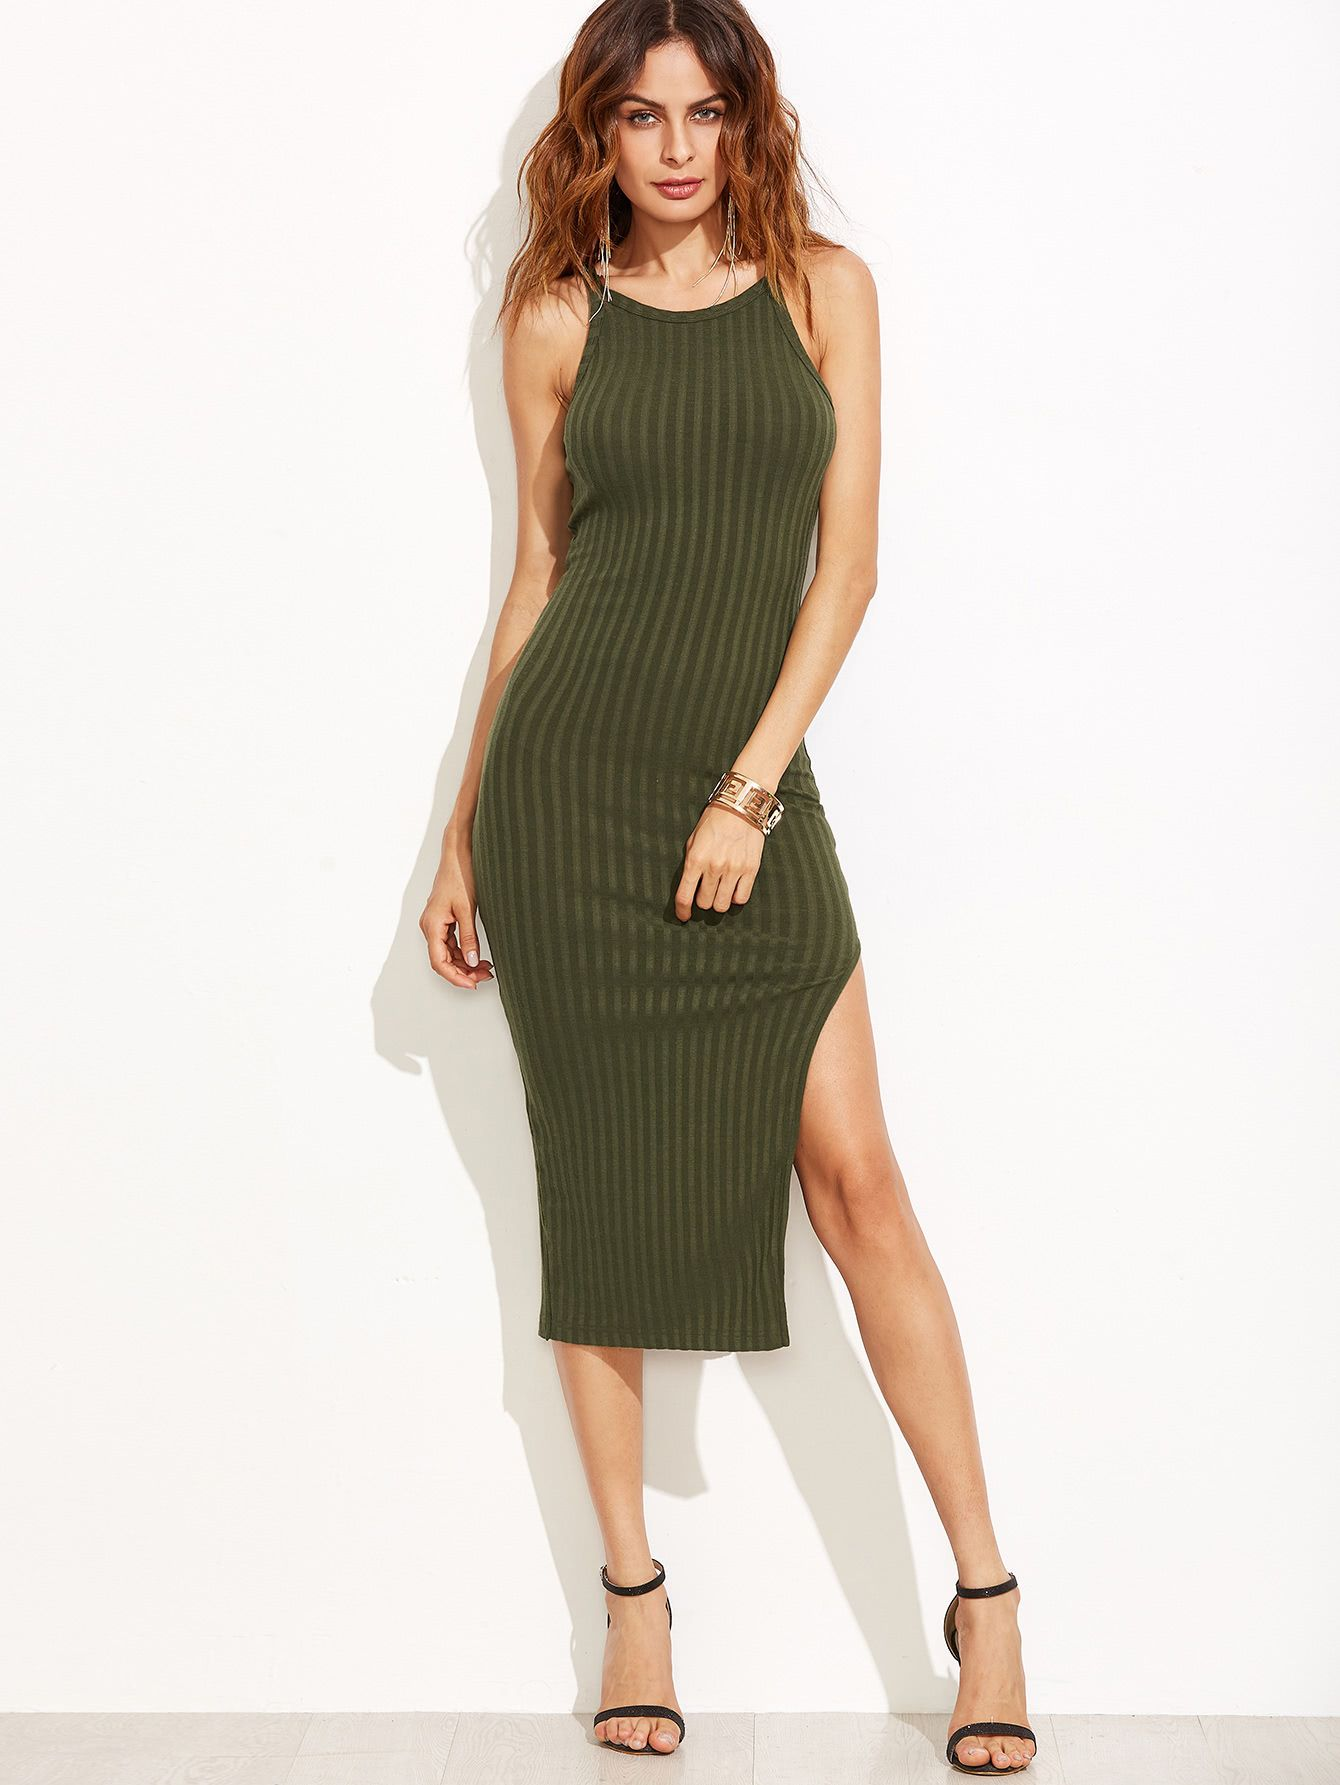 8634cdae4b SheIn Olive Green Side Slit Ribbed Cami Dress | The Style Perk ...